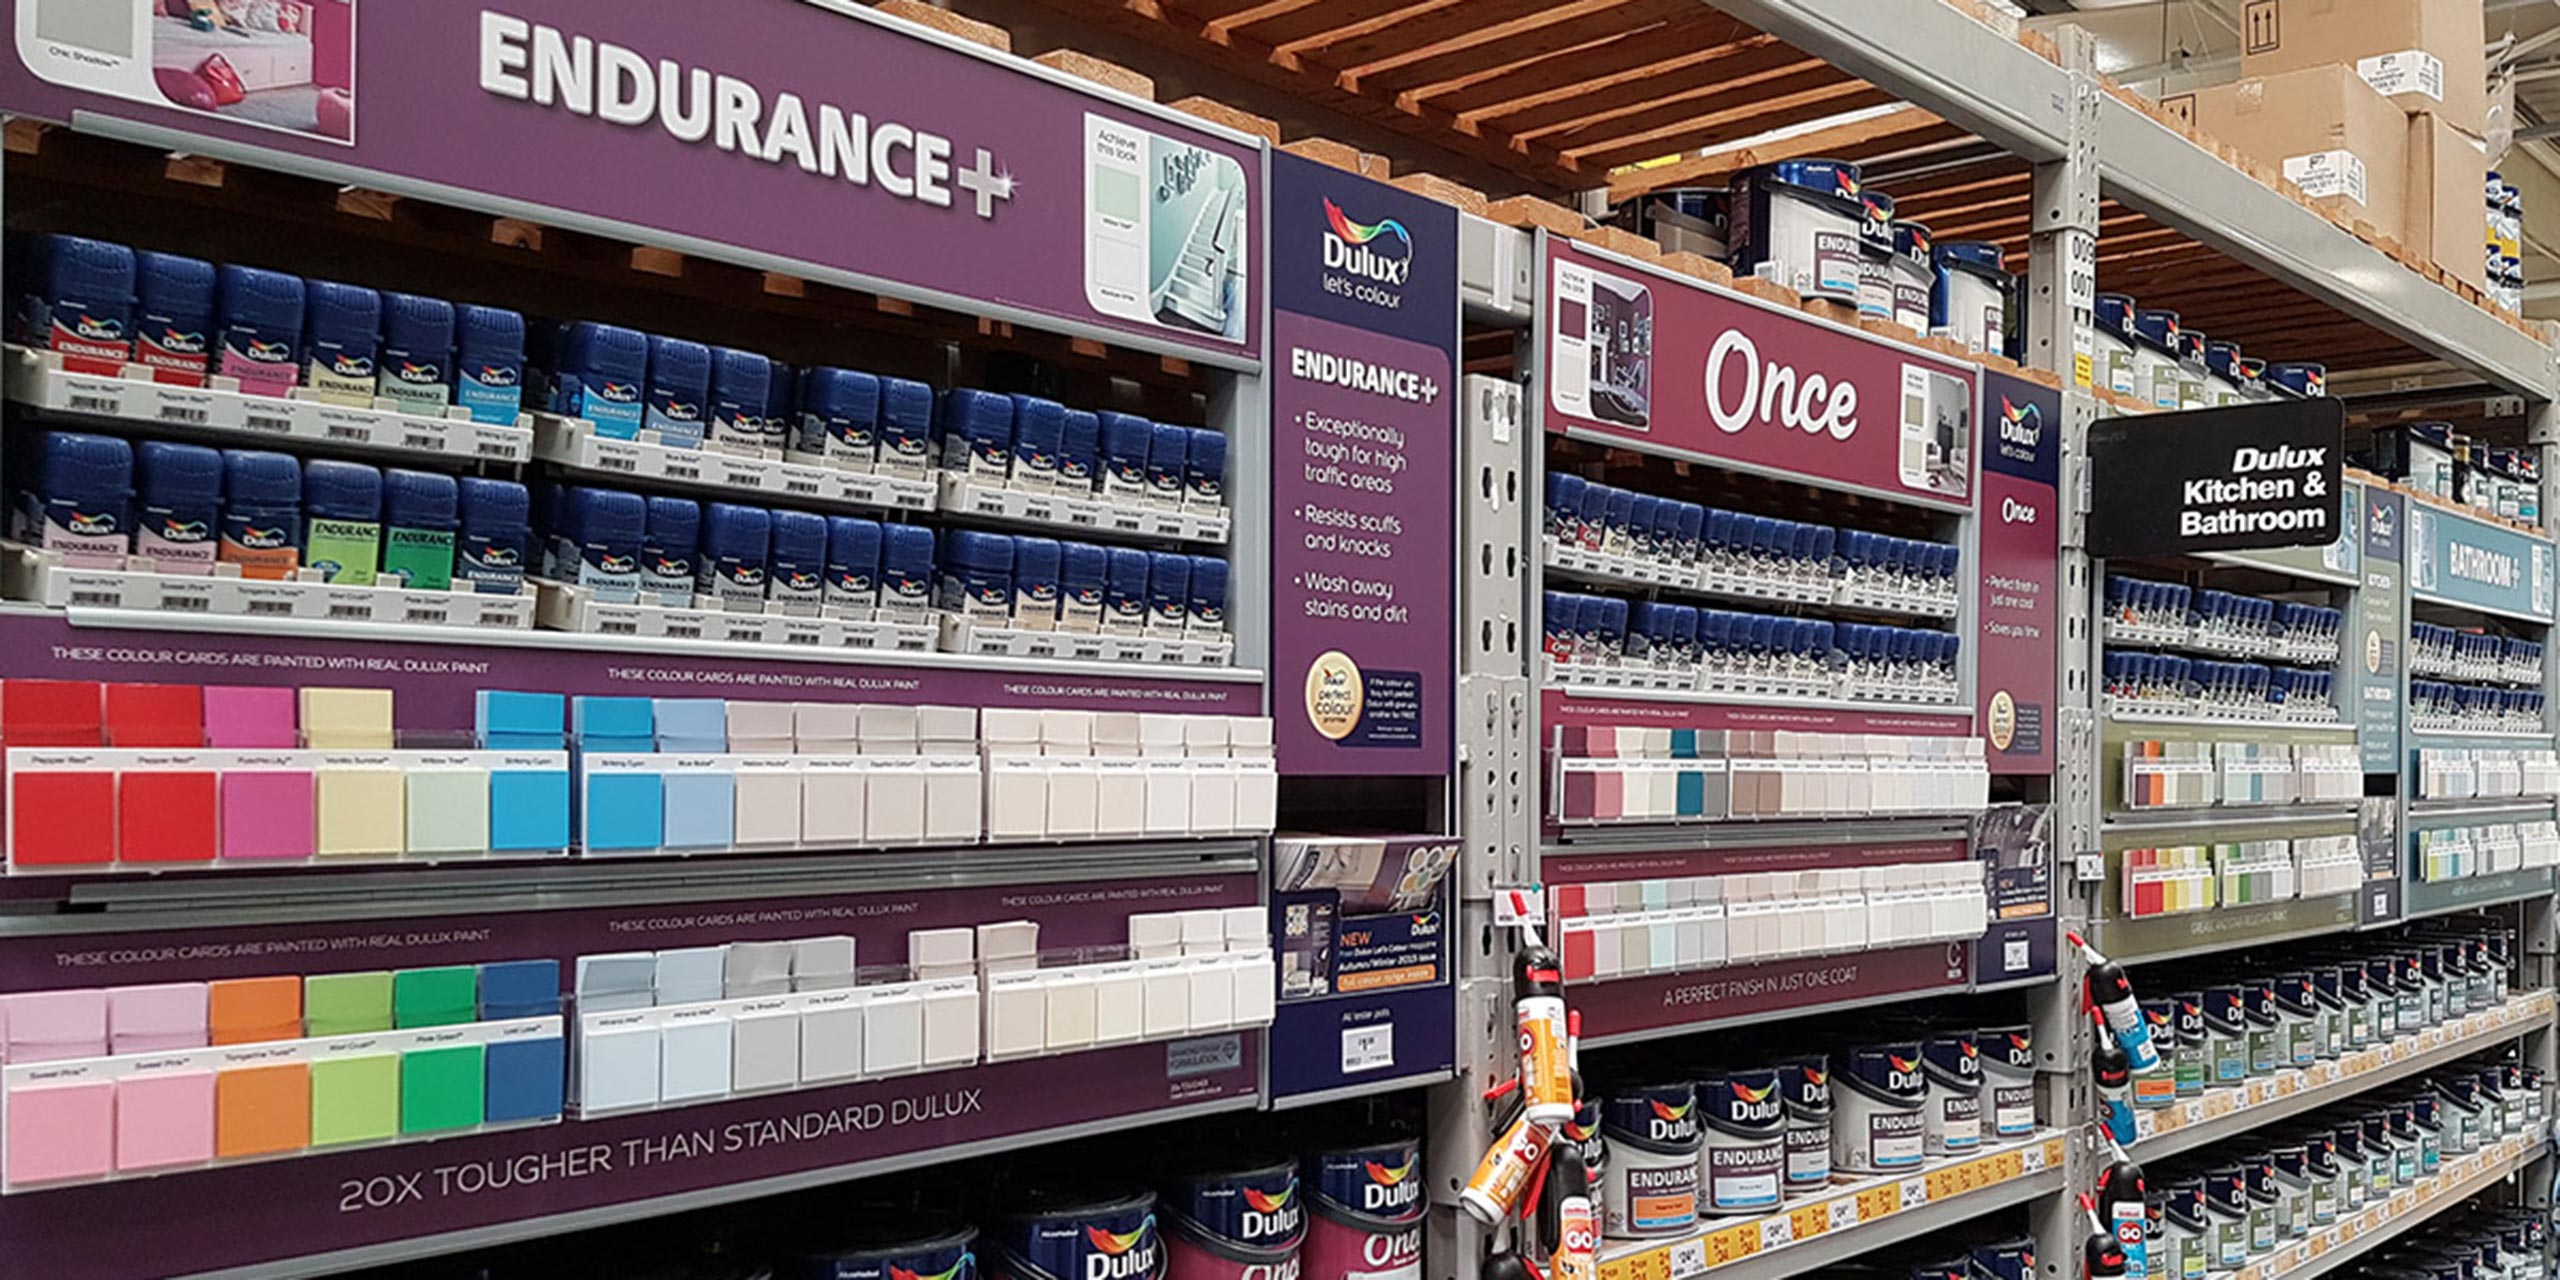 Dulux Value Added Range POS Retail Display - Cirka